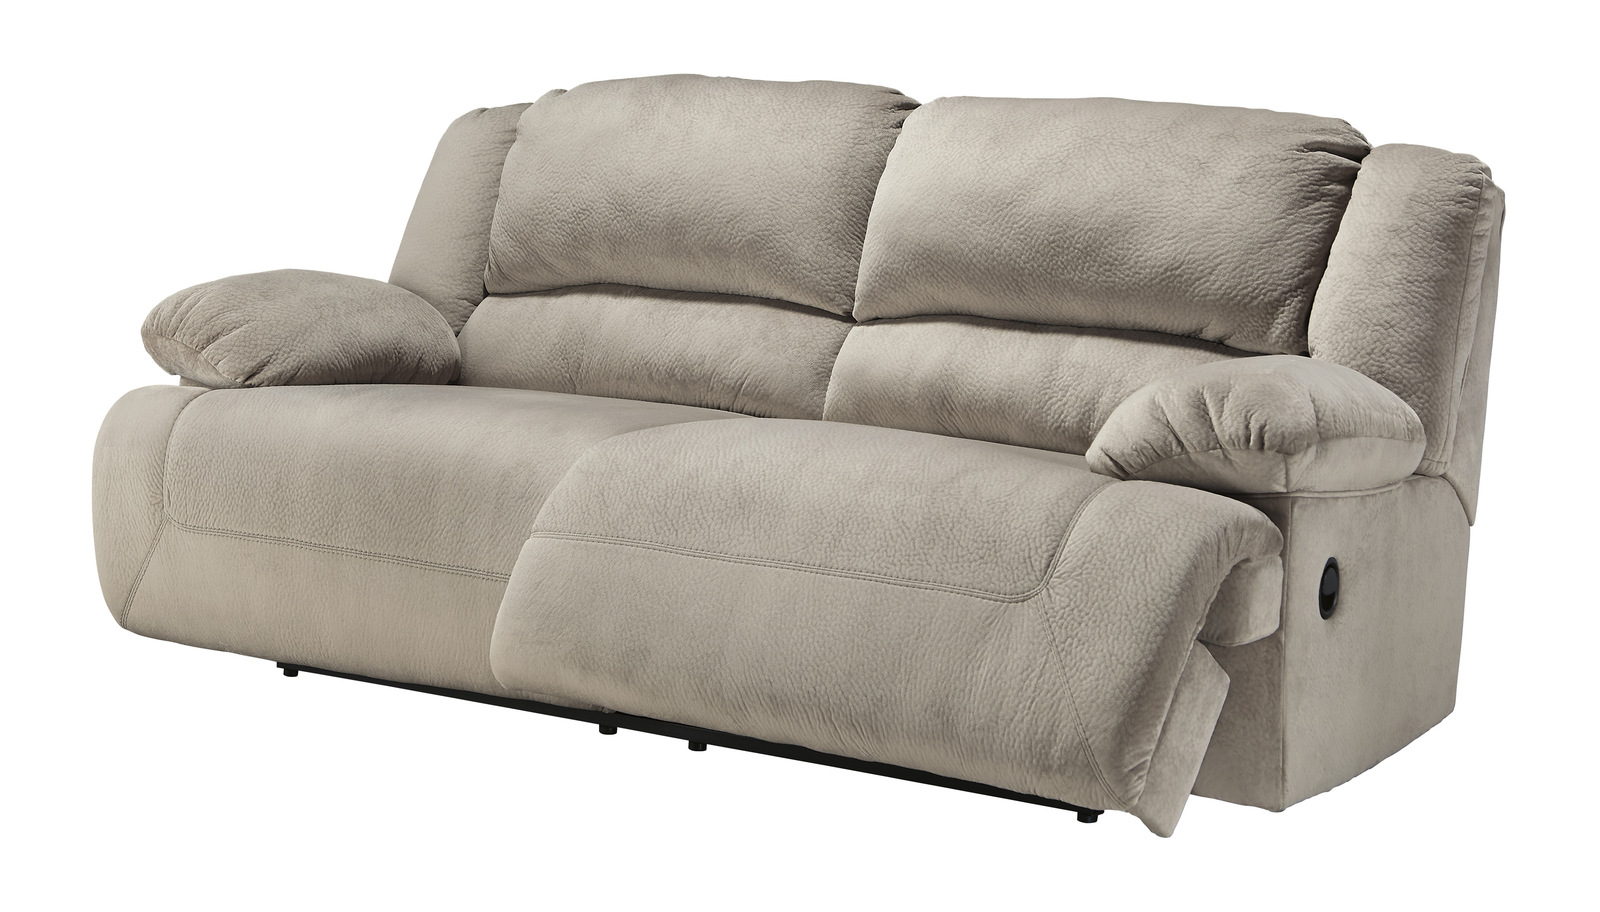 Toletta 2 Seat Reclining Sofa In Granite 5670381 With Regard To 2 Seater Sofas (View 12 of 15)